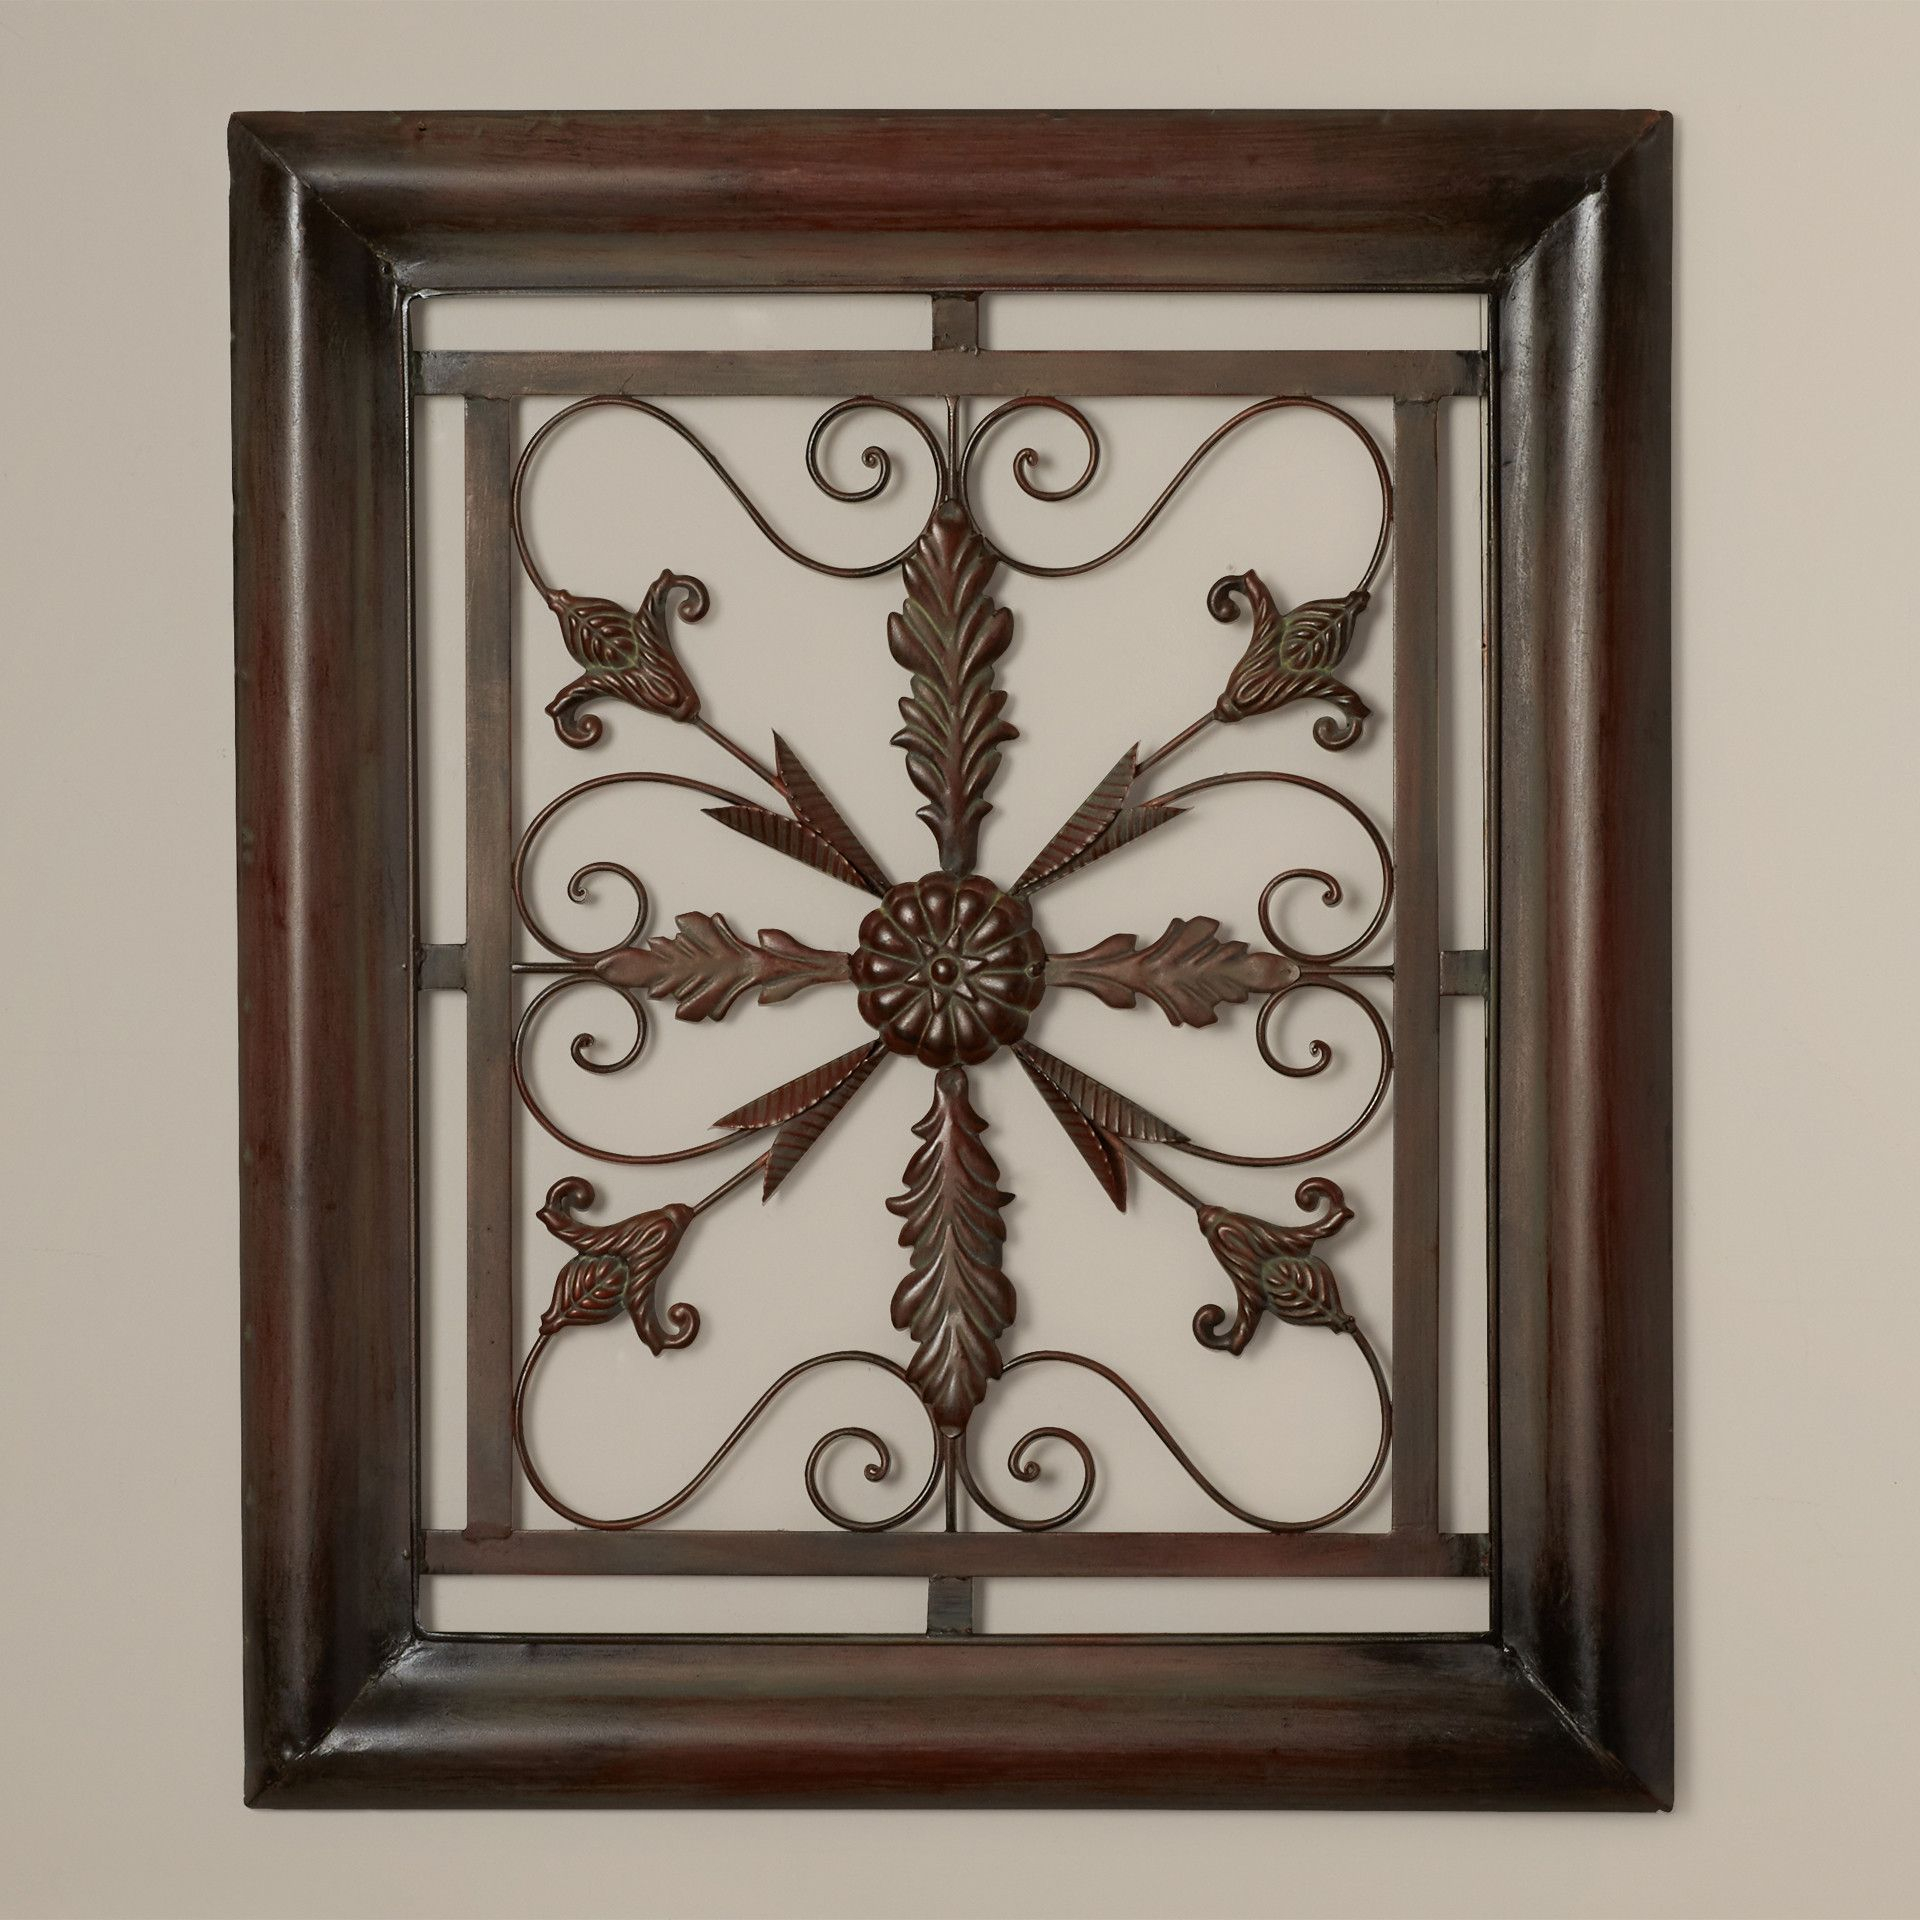 Charlton Home® Bayliss Square Scroll Wall Decor | Tuscan within Sign Wall Decor by Charlton Home (Image 13 of 30)